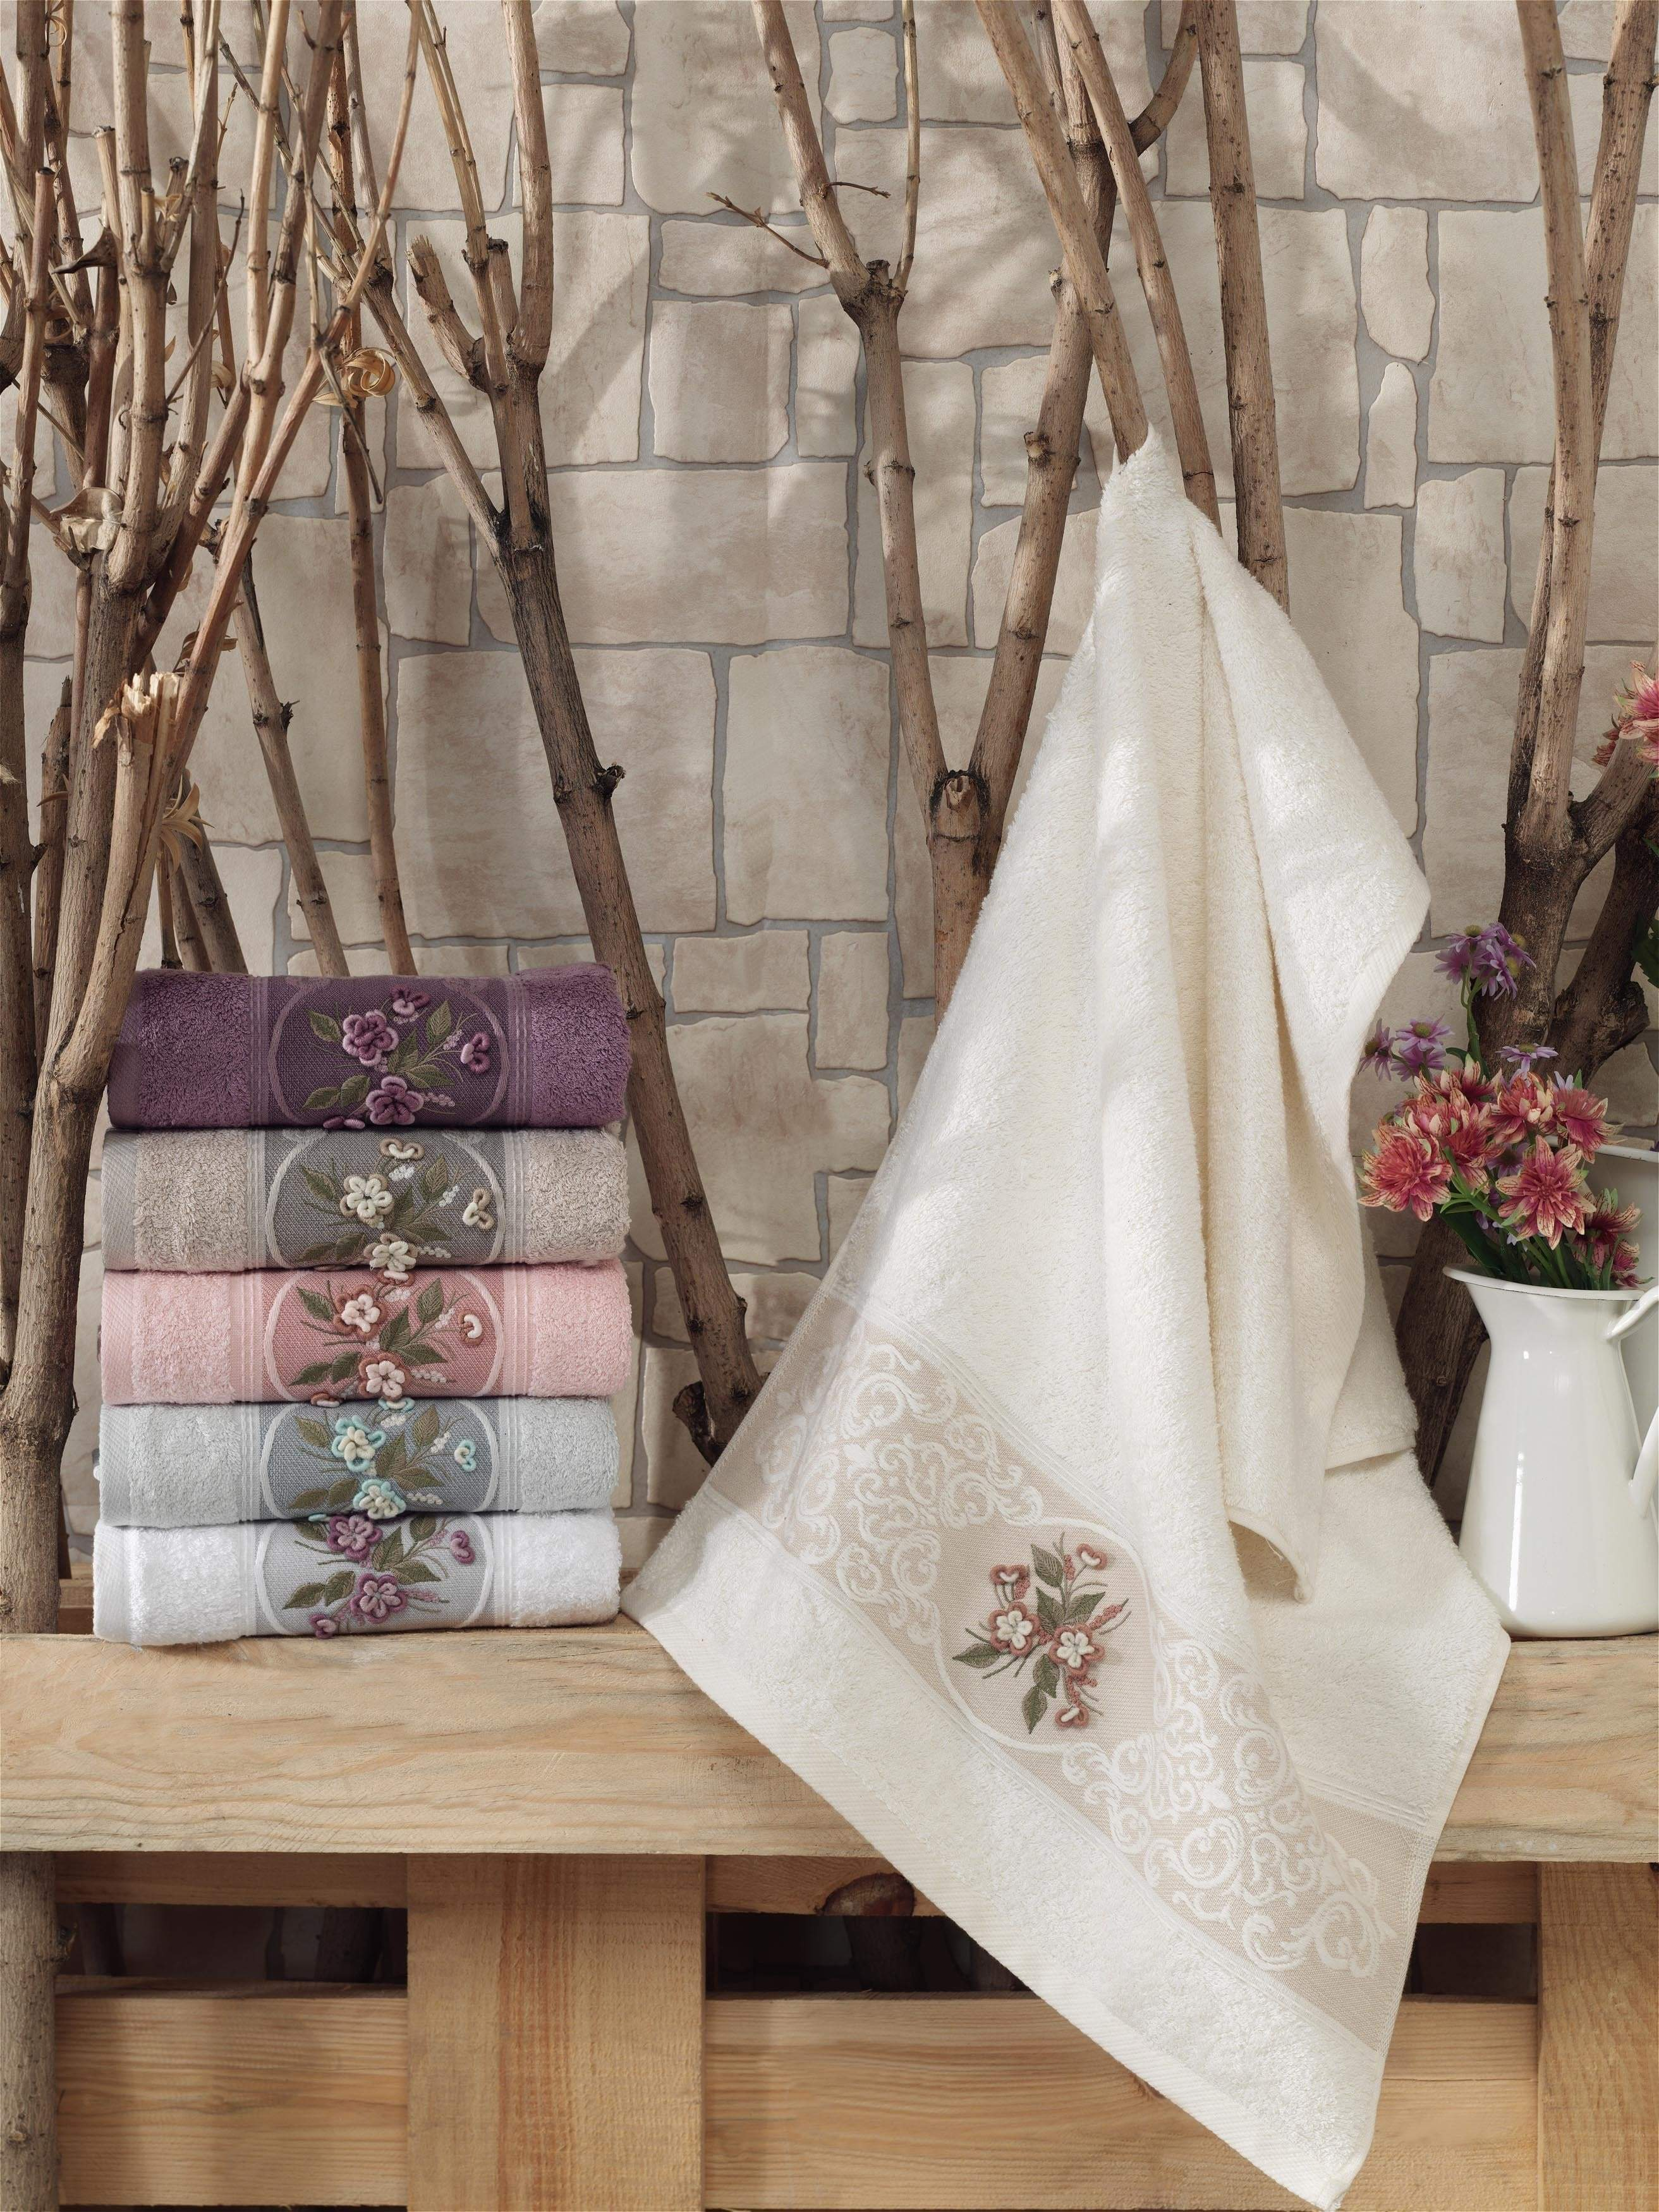 6 COLORS JACQUARD BAMBOO TOWEL WITH HAND MADE FLOWERS TURKISH MADE - COTTONISH